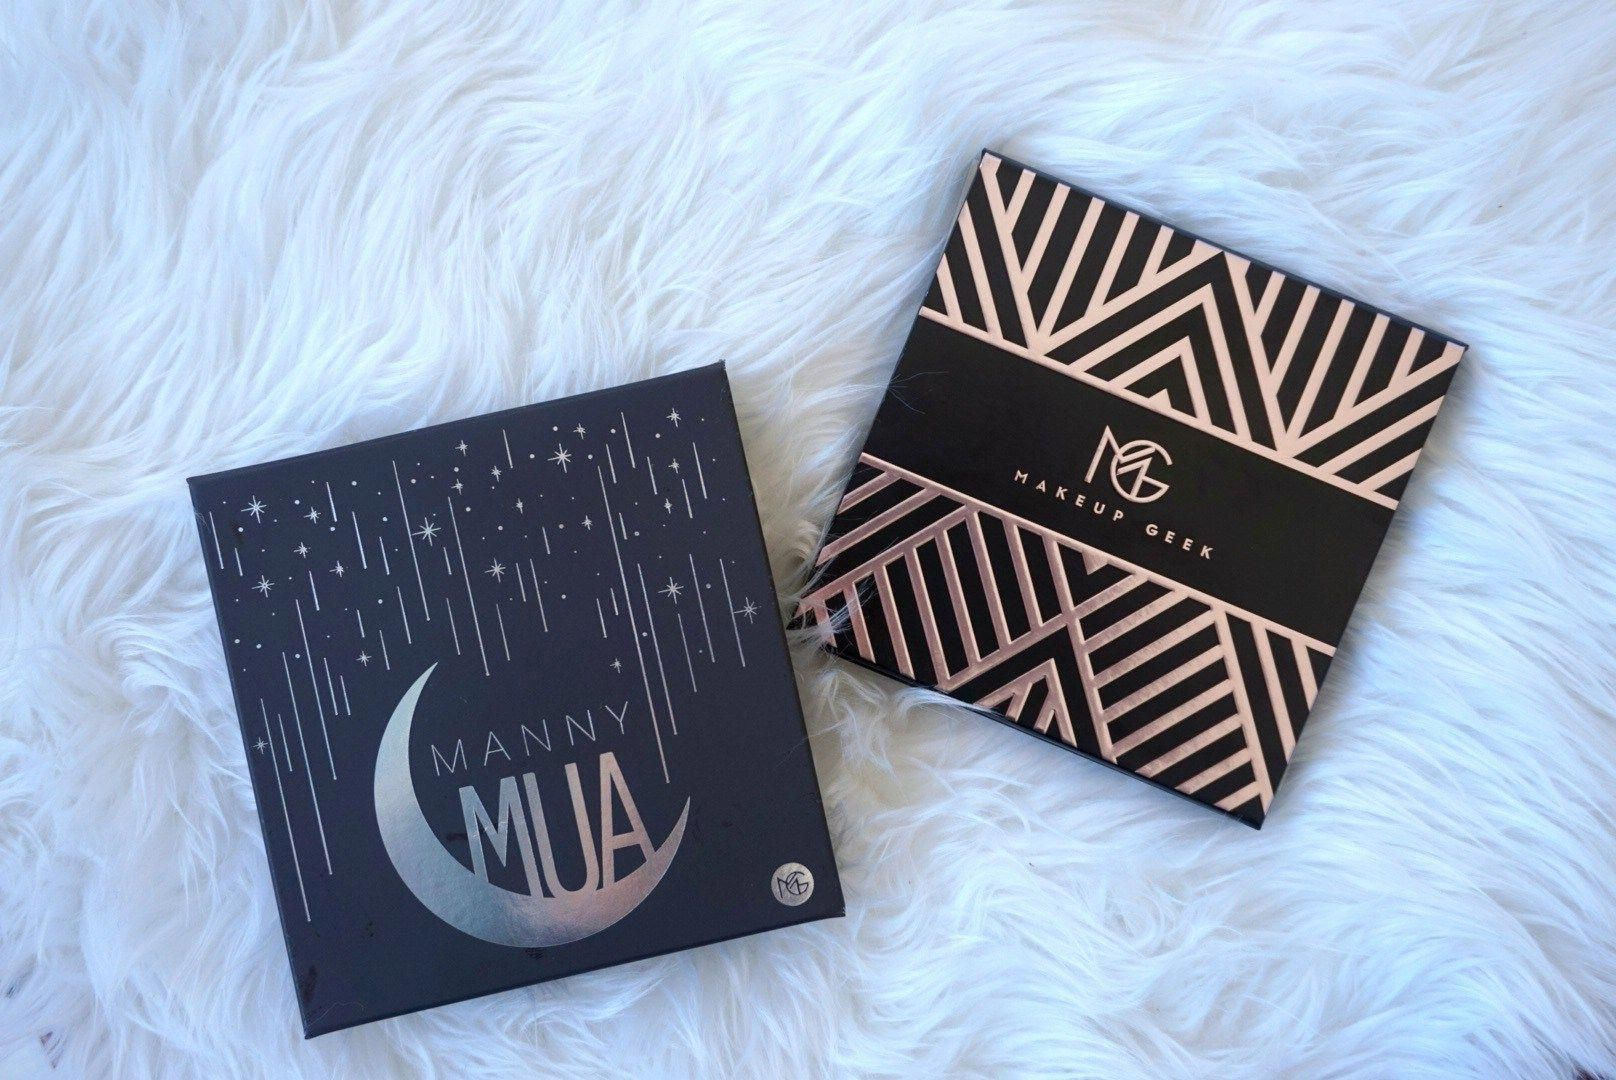 manny mua x makeup geek eyeshadow palette full review and